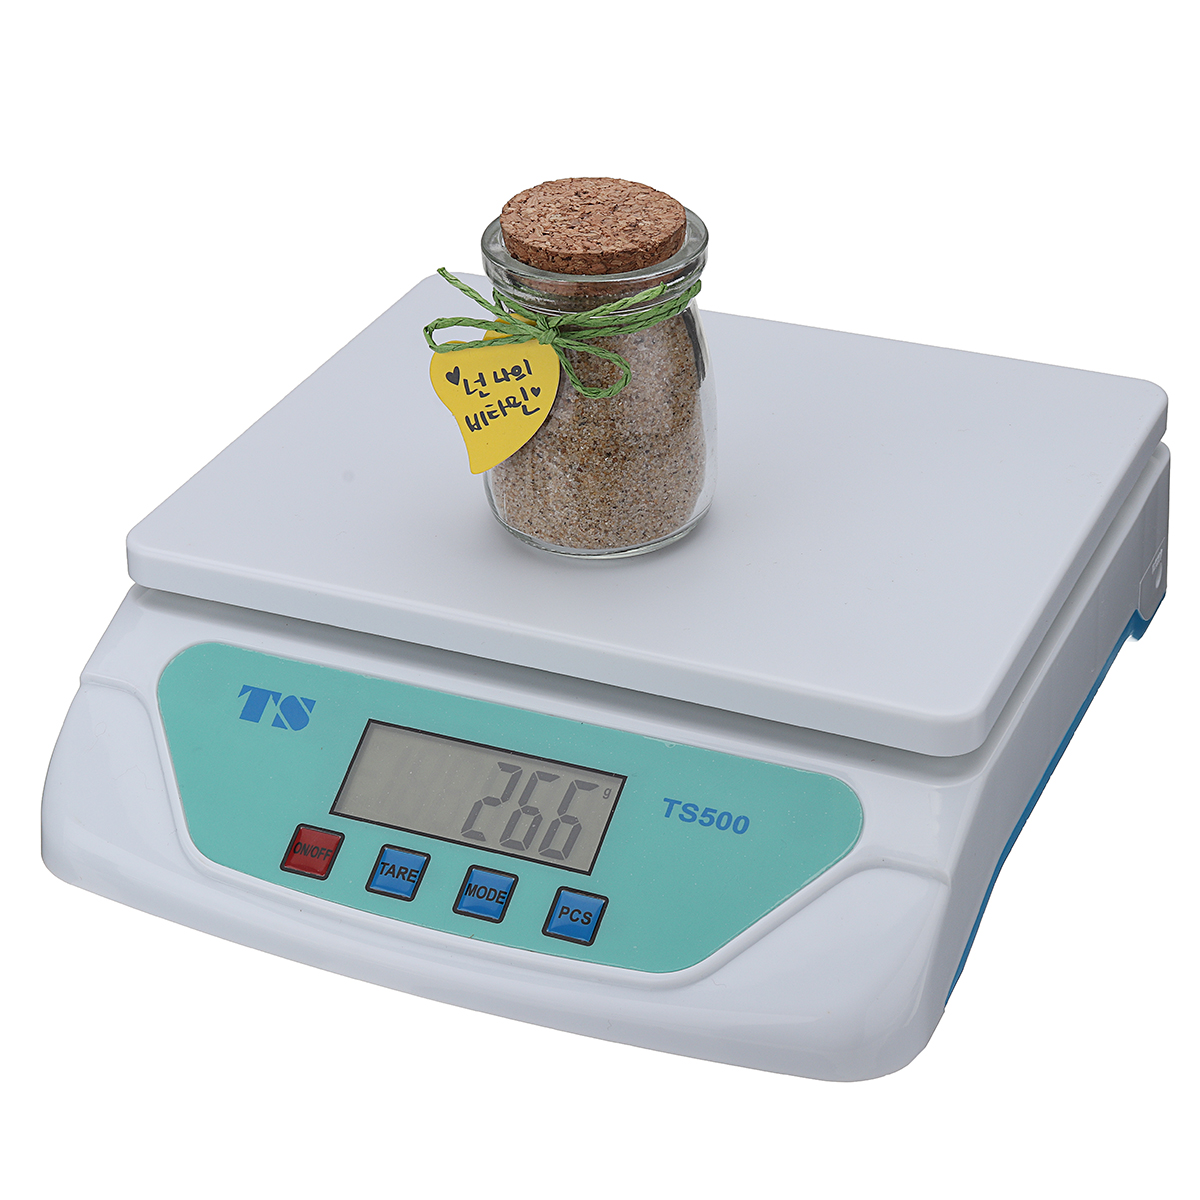 30kg electronic scales Weighing Kitchen Scales Grams Balance LCD ...